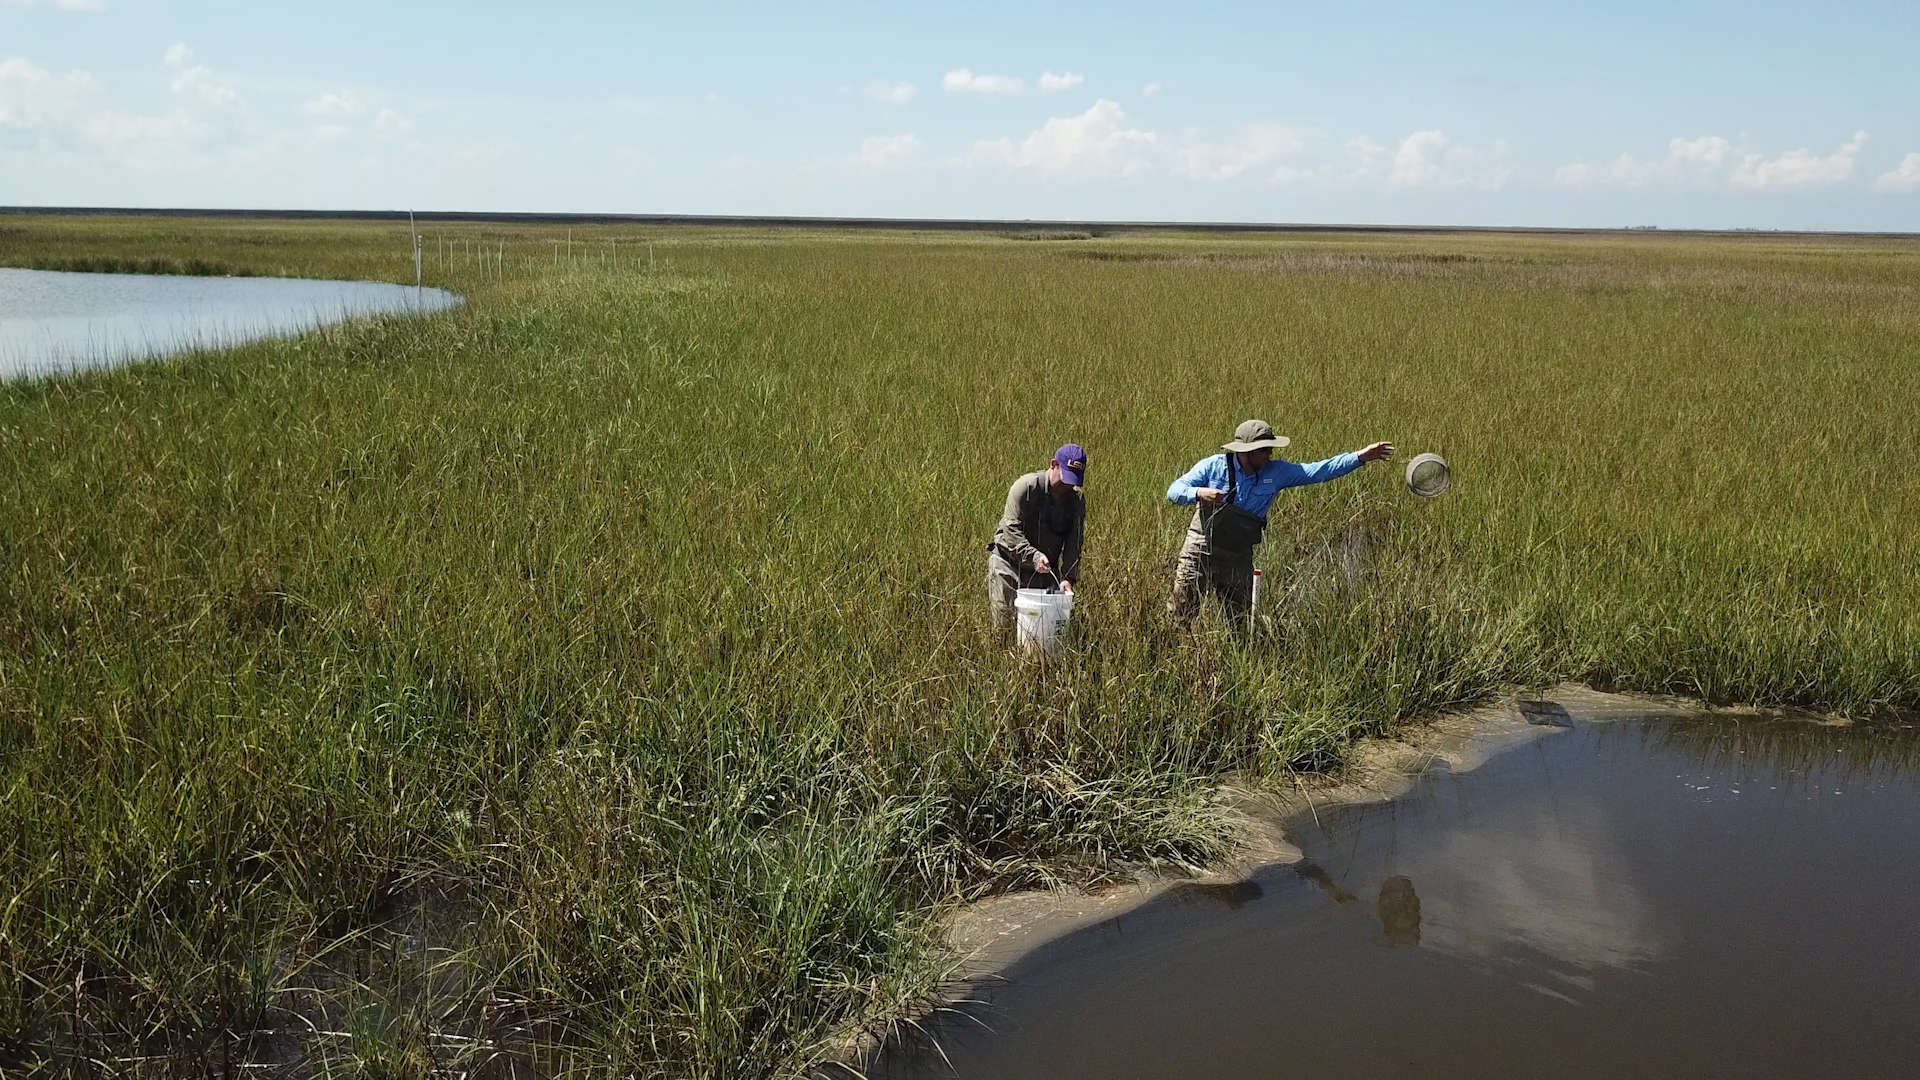 Dr. Michael Polito from Louisiana State University deploys pond trap in Louisiana marsh, 2019.